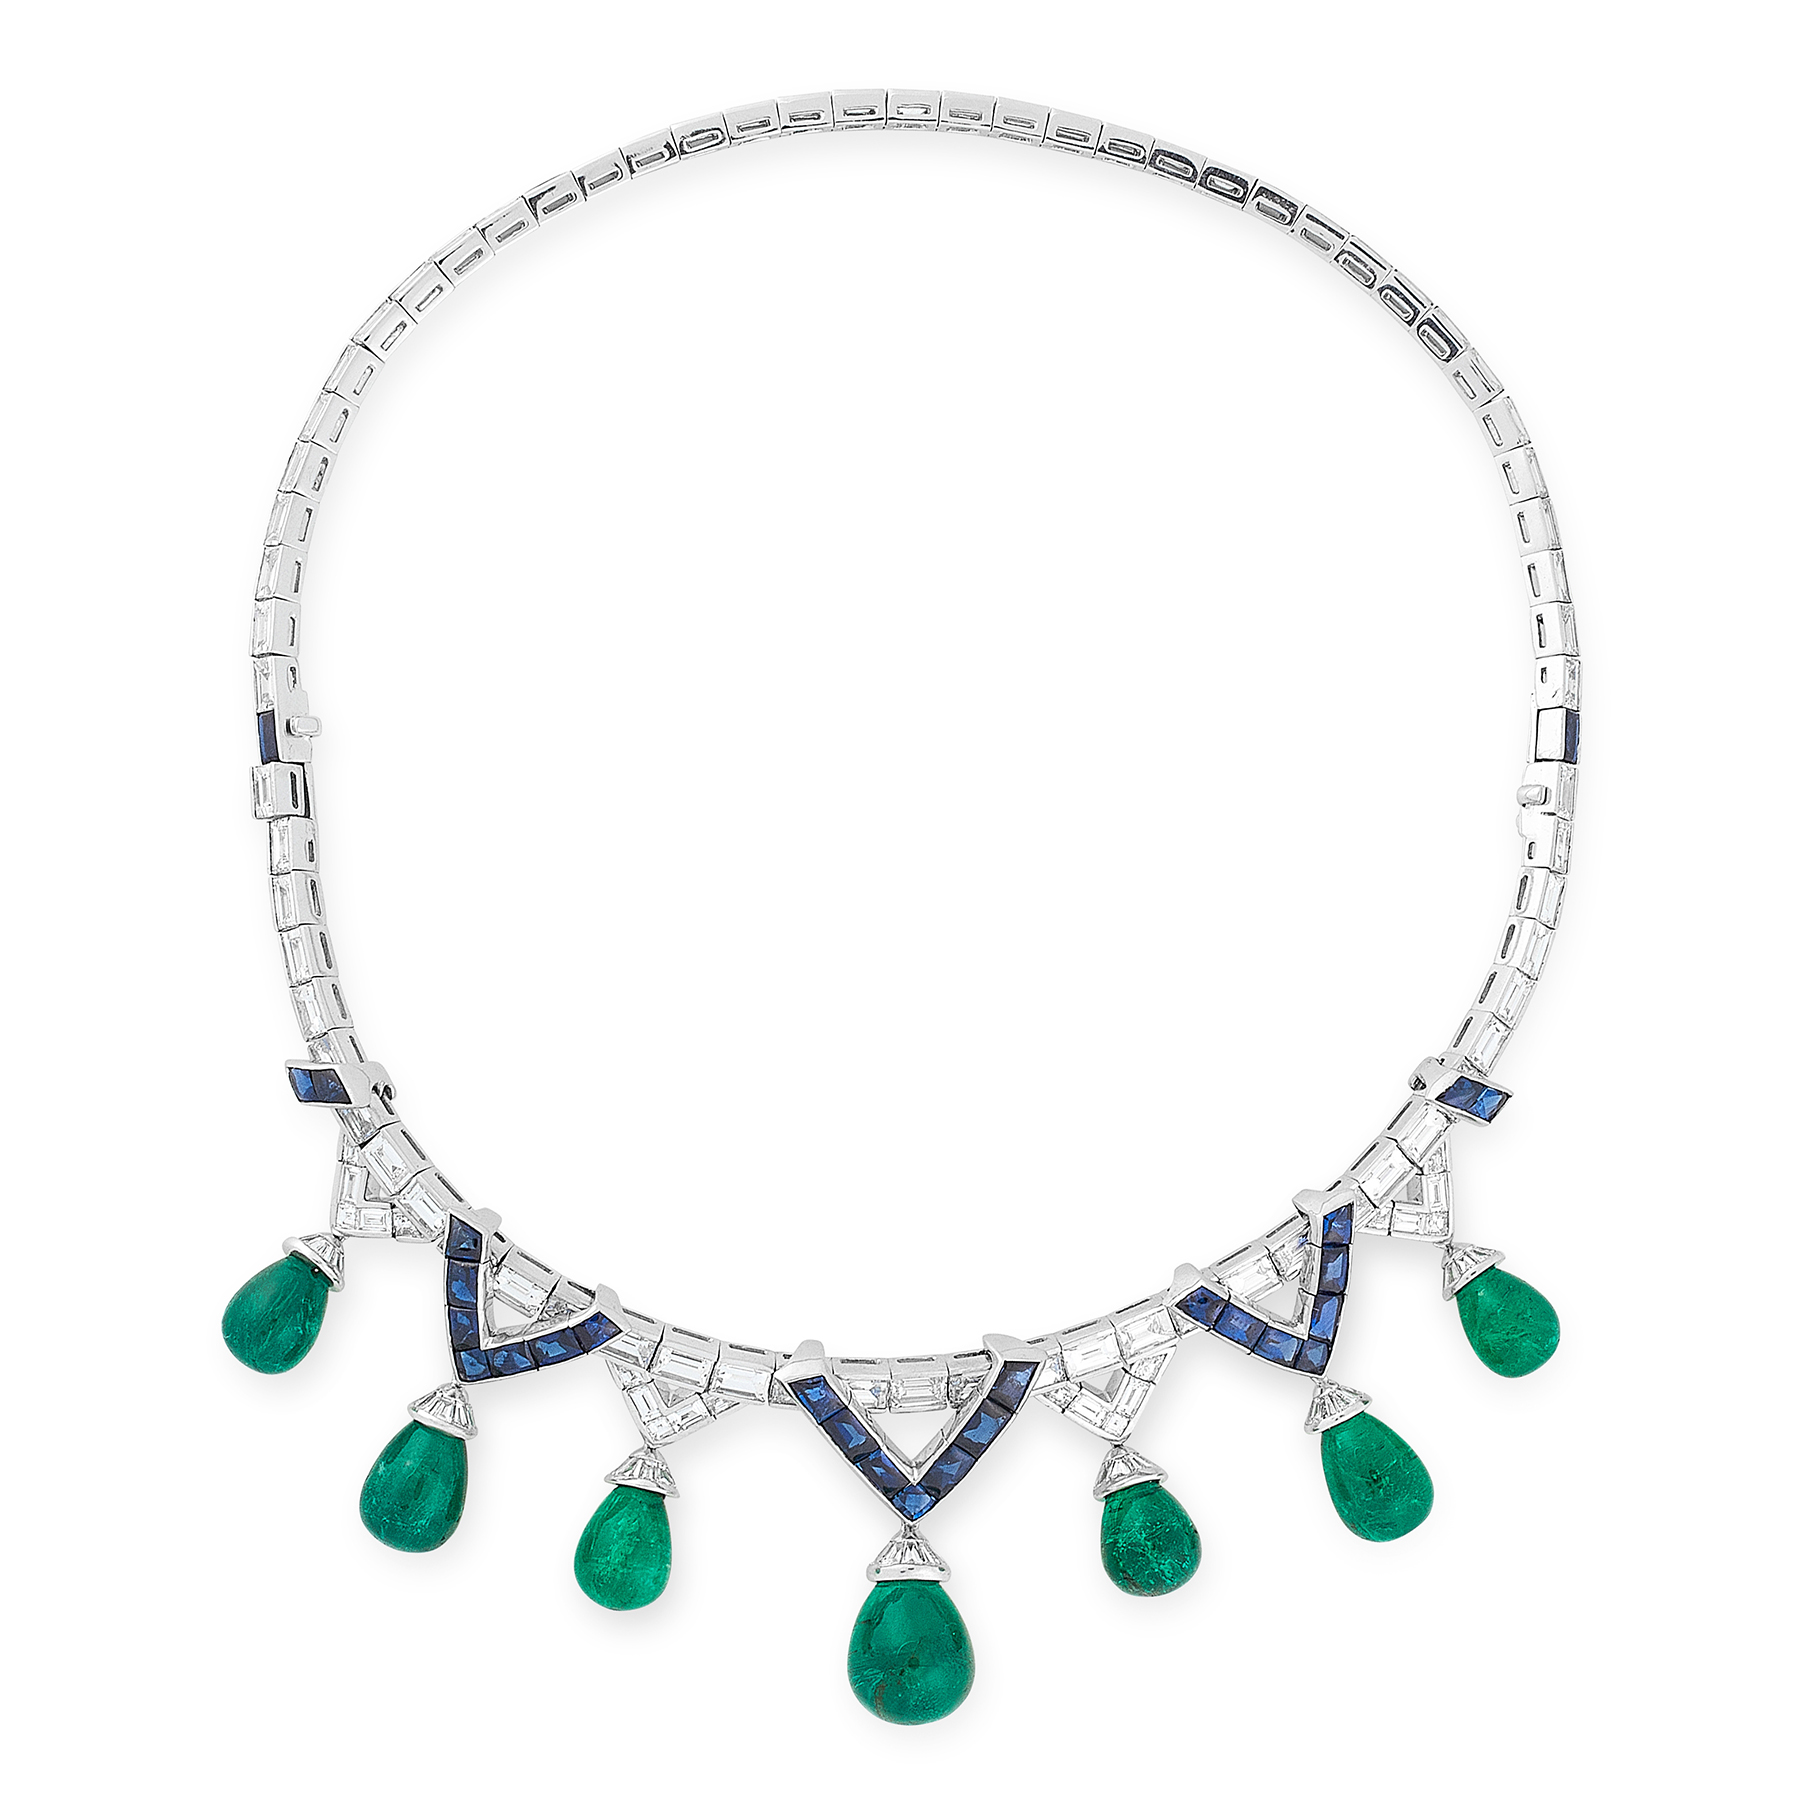 AN EMERALD, SAPPHIRE AND DIAMOND NECKLACE, MICHELE DELLA VALLE comprising a row of graduated step